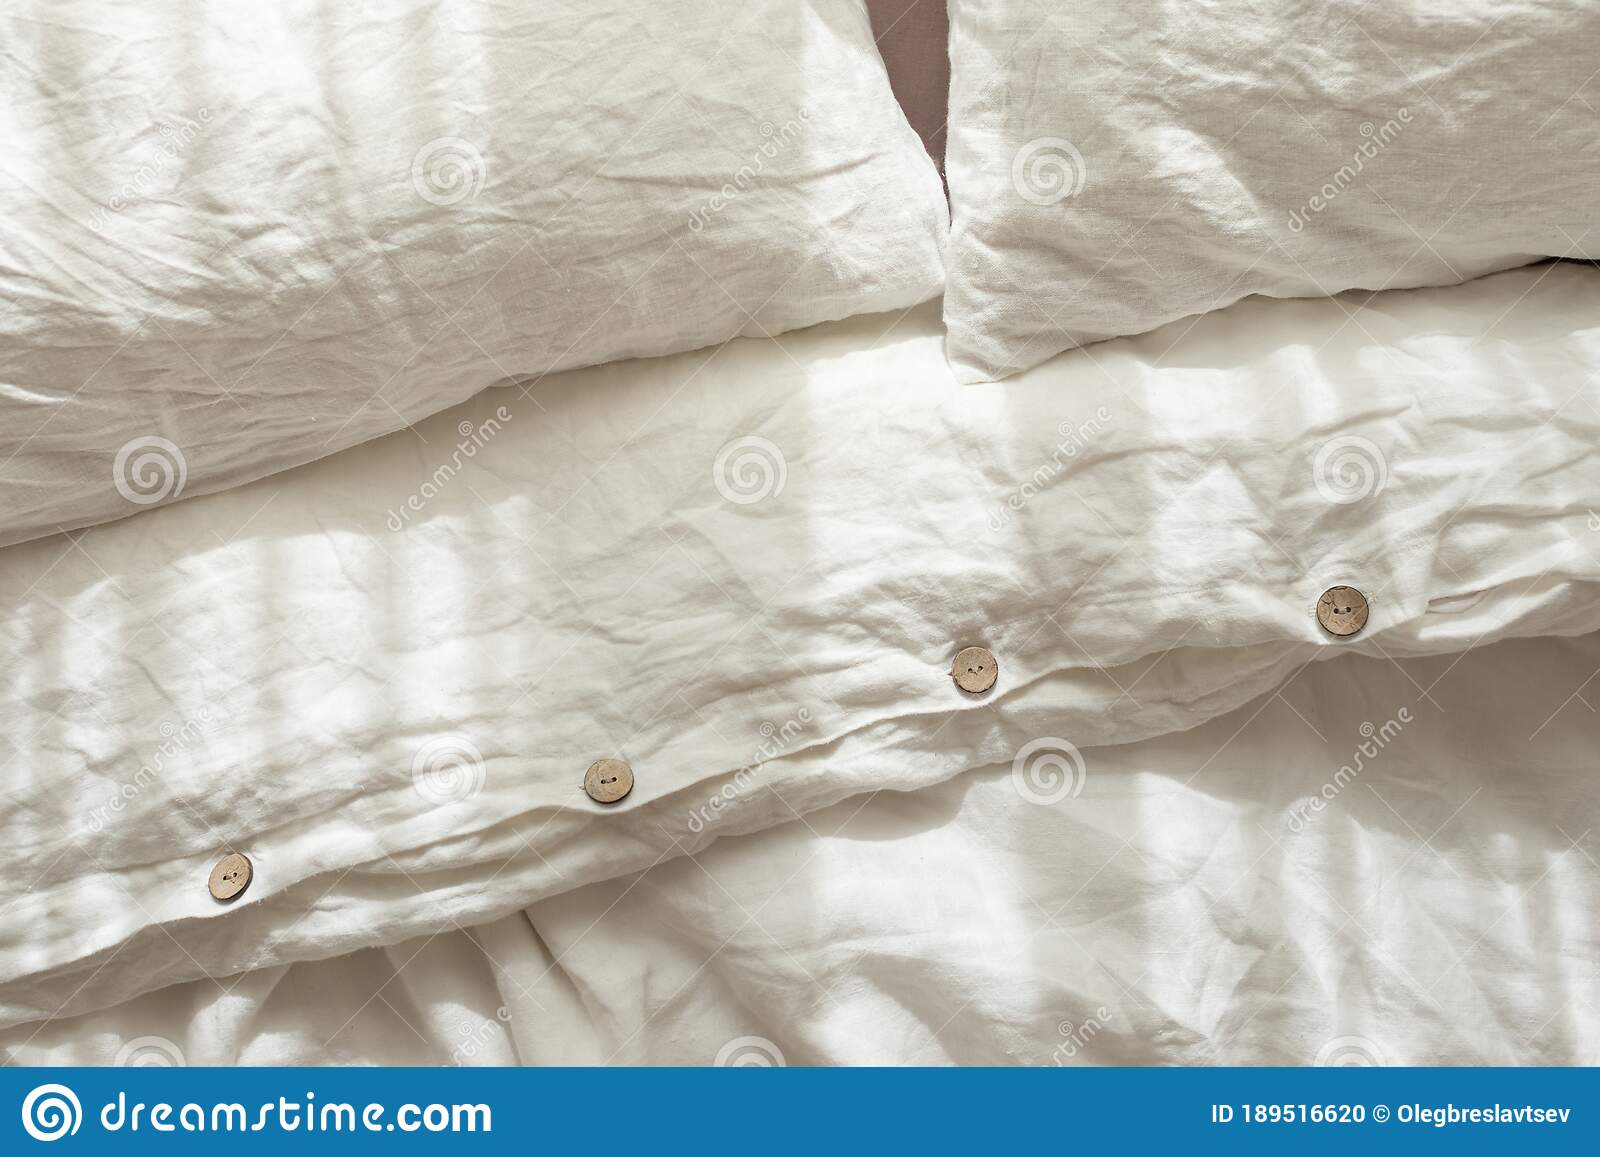 Trendy Organic Natural Linen Bedclothes With Wooden Buttons Closeup Bedding Stock Photo Image Of Fabric Clean 189516620